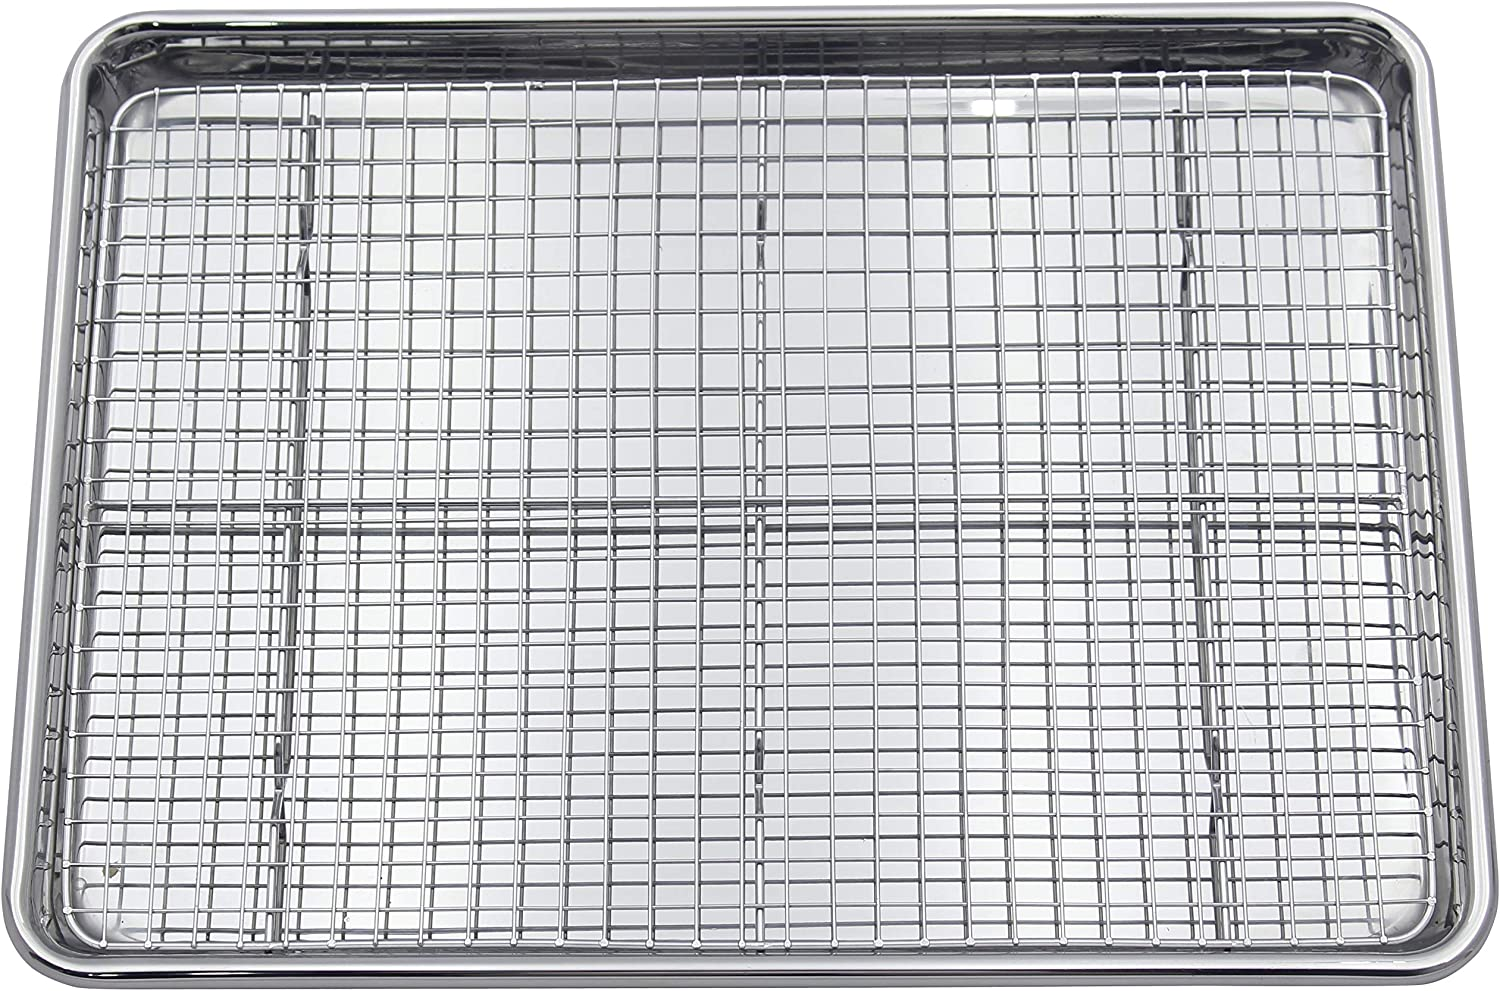 Checkered Chef Stainless Steel Baking Sheet With Rack - Heavy Duty Warp ResistantHalf Sheet Pan for Baking with Oven Safe Baking/Cooling Rack